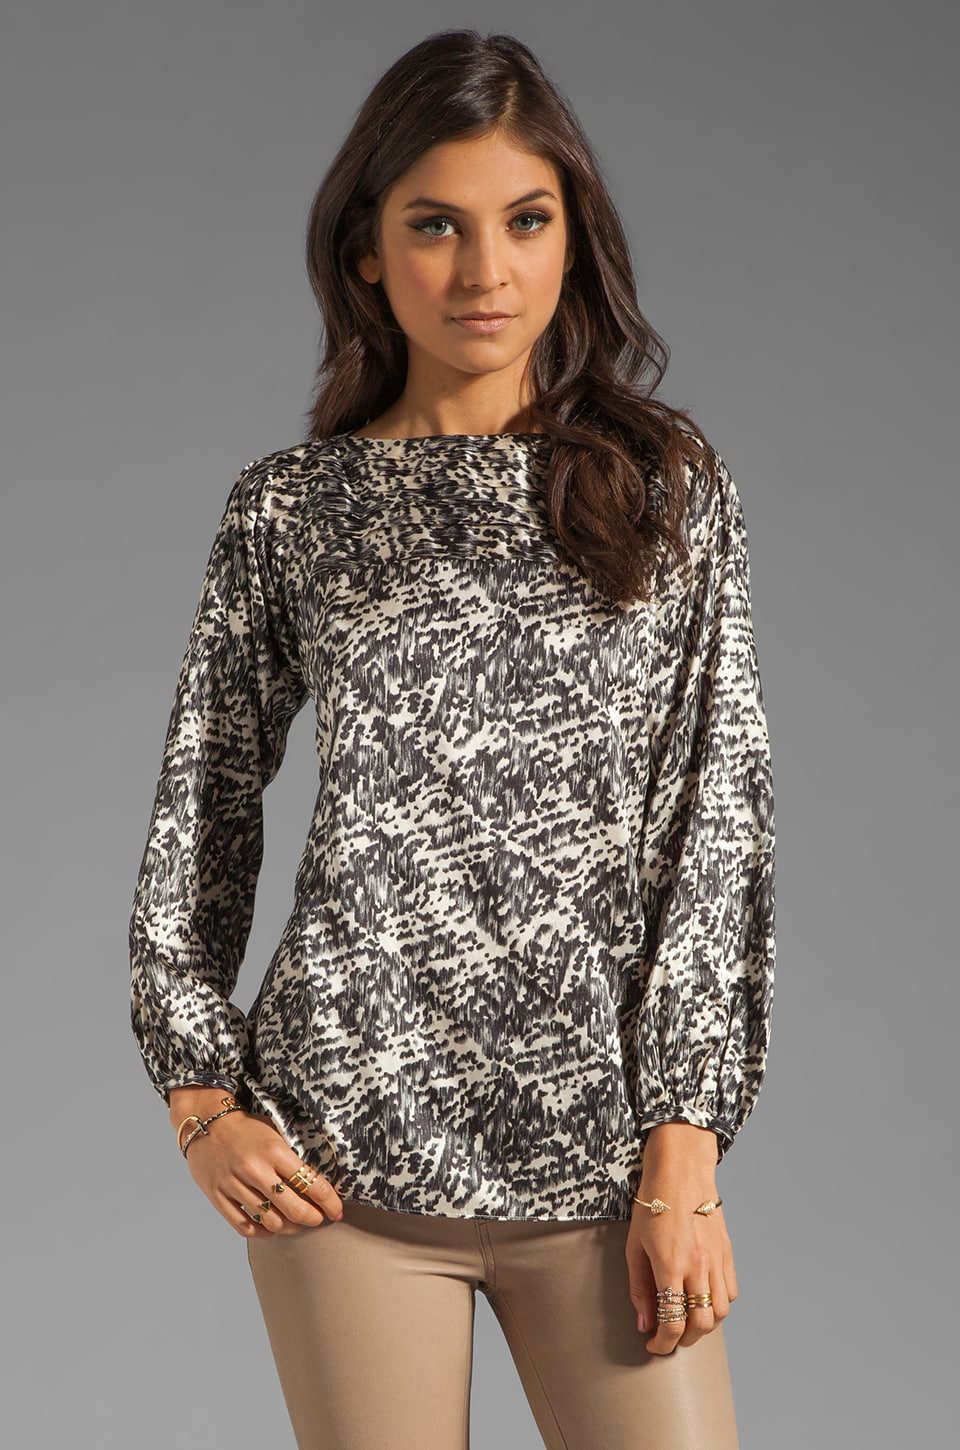 Shoshanna Winter Park Print Aliza Blouse in Winter White/Black